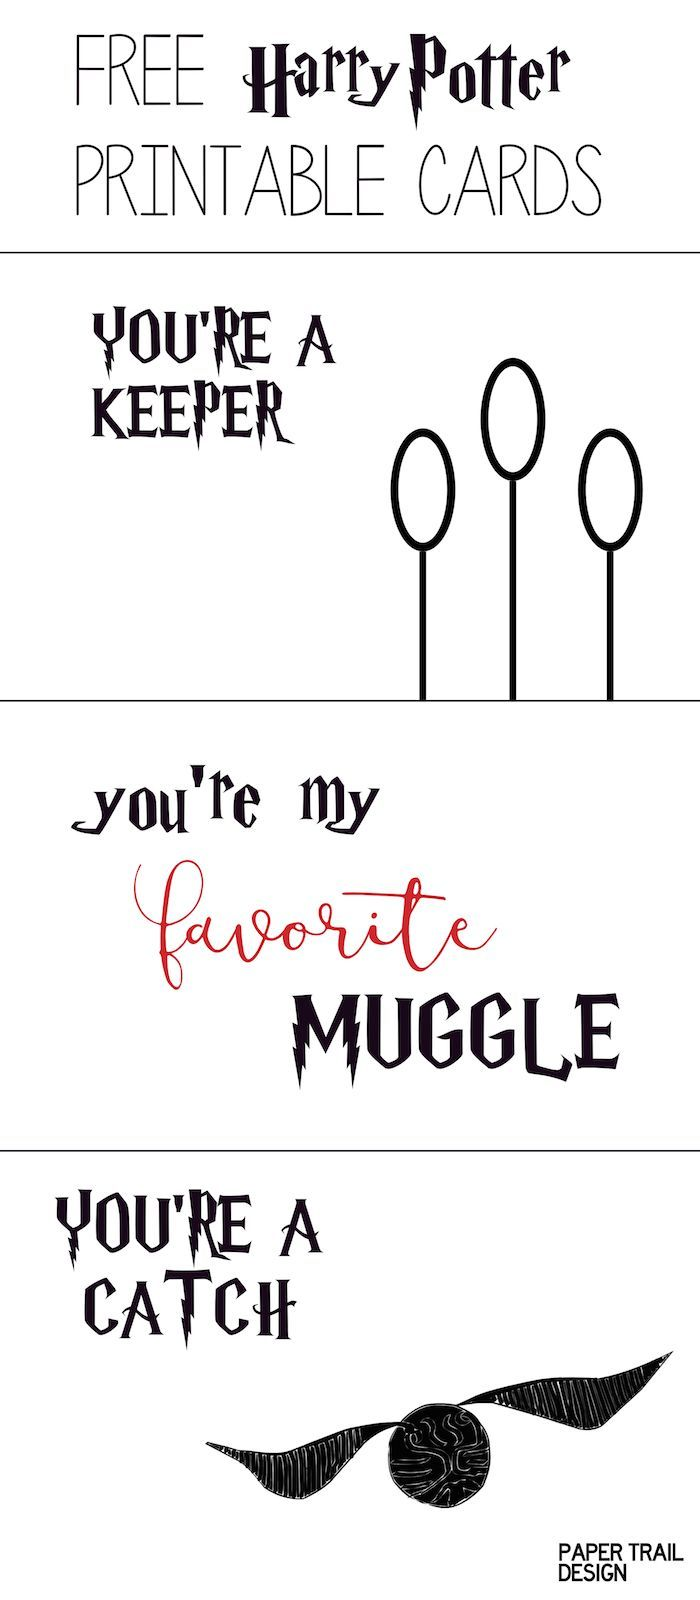 free printable harry potter cards harry potter cards free